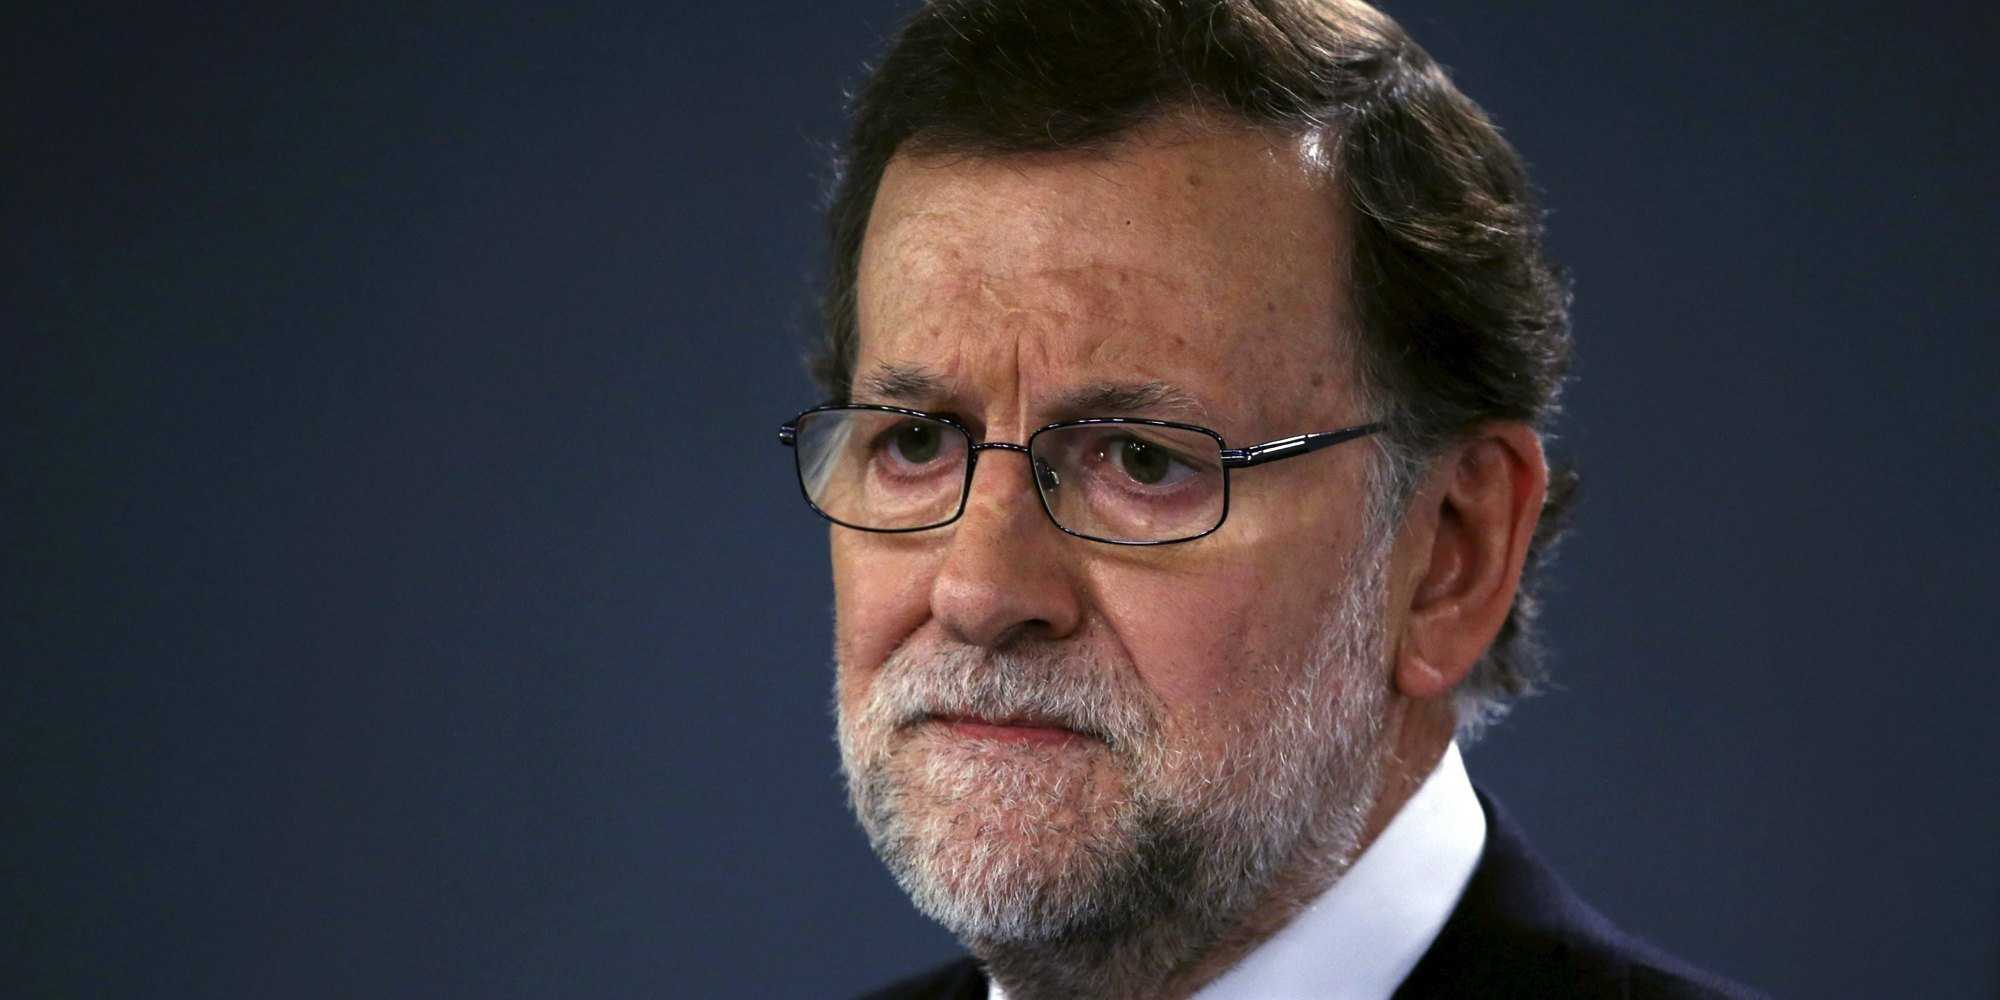 Spain's acting Prime Minister Mariano Rajoy is seen during a news conference after a cabinet meeting at Moncloa Palace in Madrid, Spain, in this December 29, 2015 file photo. To match SPAIN-ECONOMY/ REUTERS/Juan Medina/Files